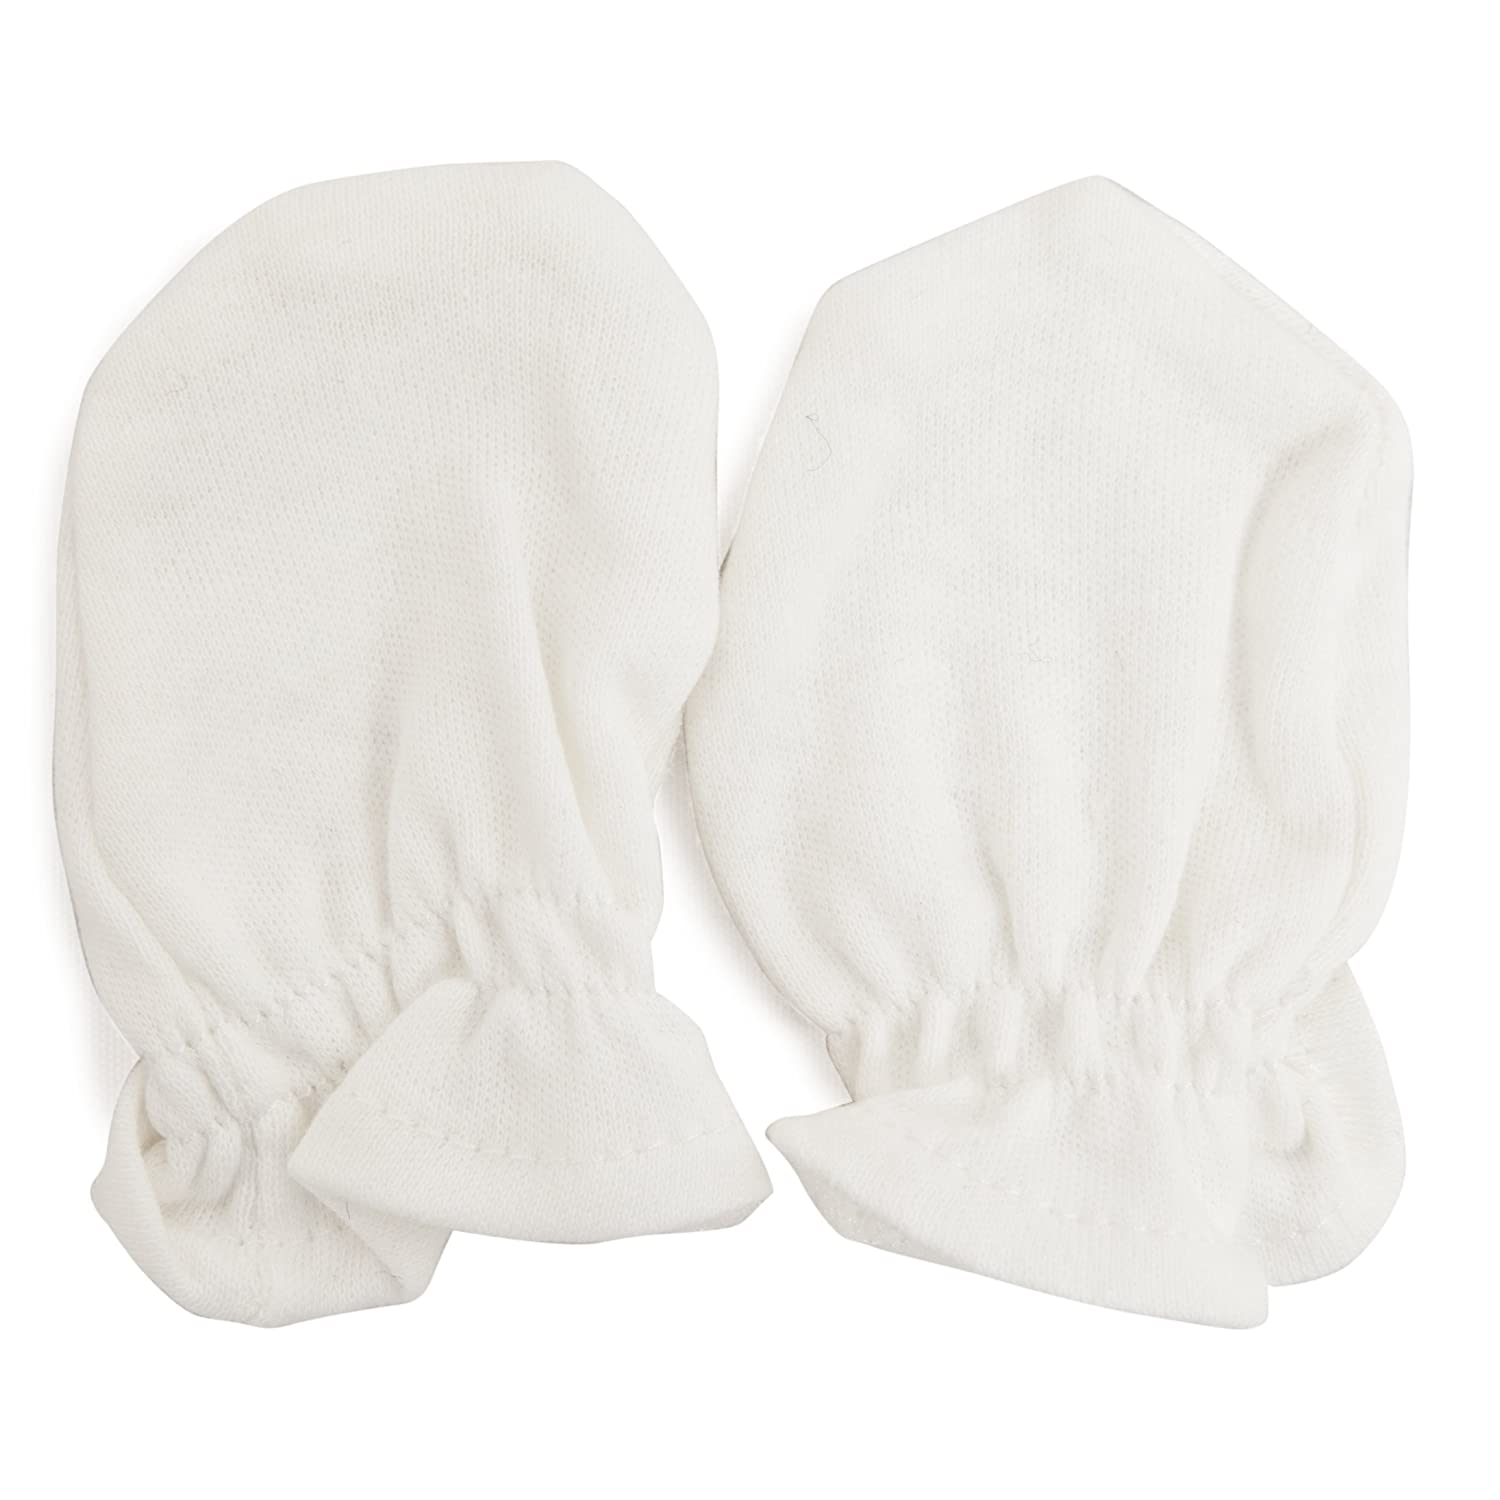 Baby New Born Scratch Mittens (Pack of 2 Pairs) (One Size Fits All) (Cream) Universal Textiles